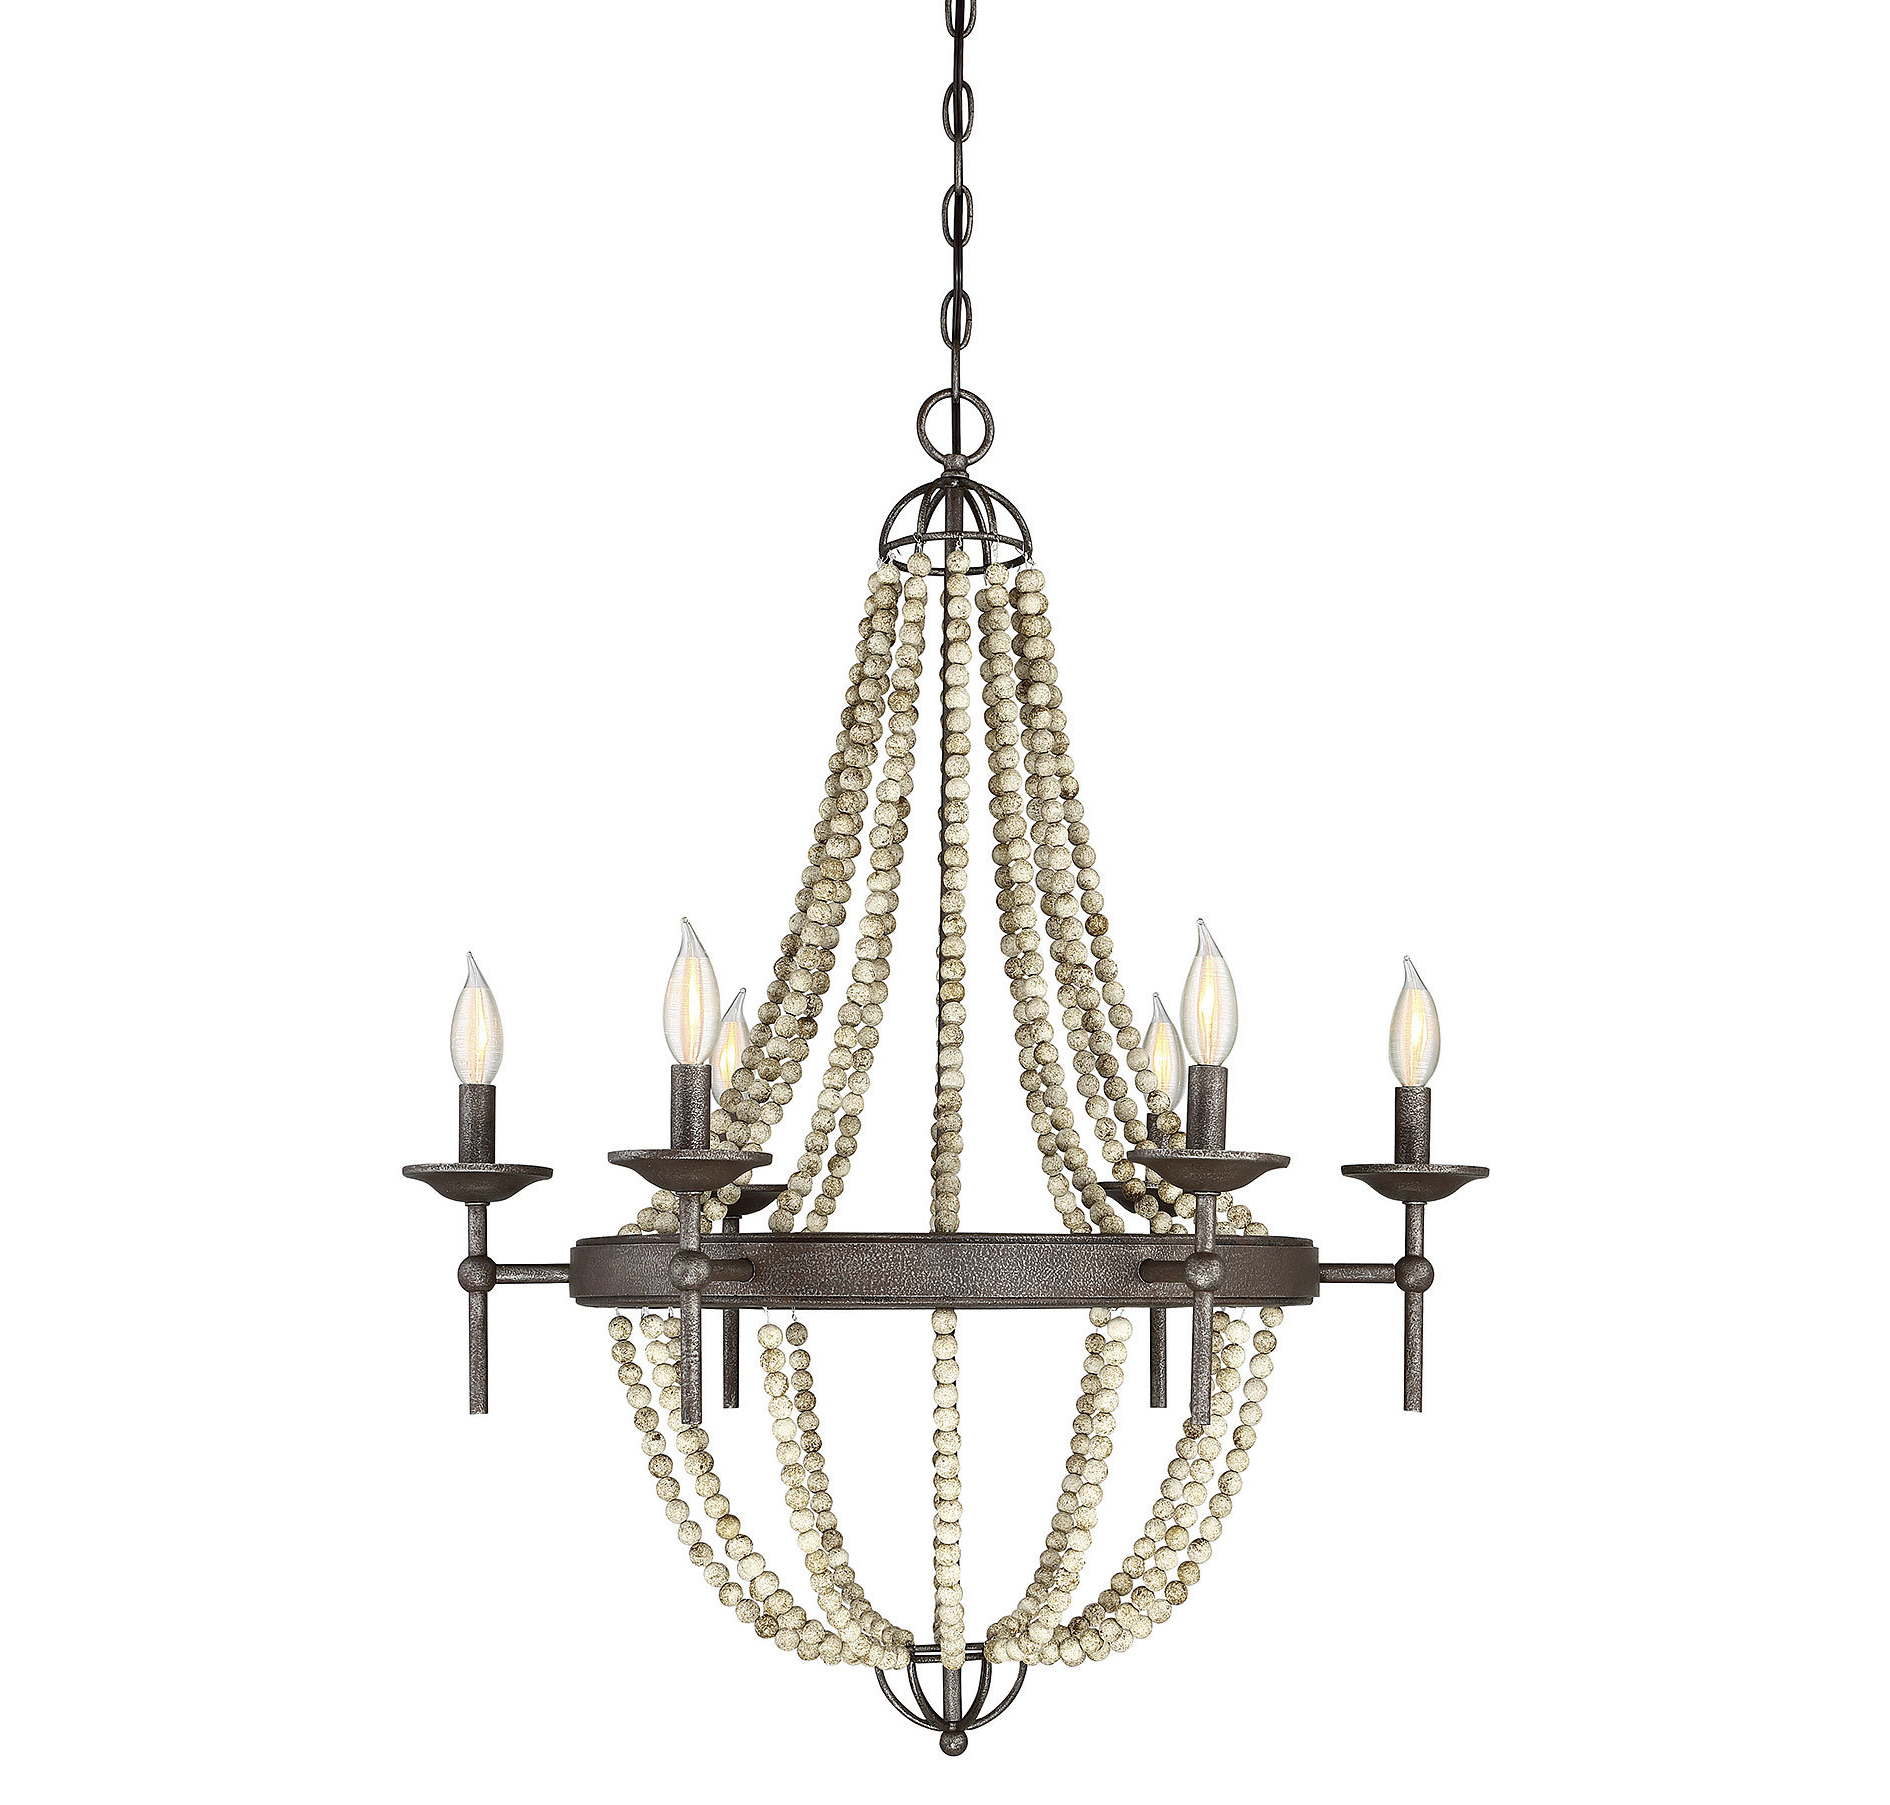 Pennington 6 Light Empire Chandelier Intended For Current Ladonna 5 Light Novelty Chandeliers (View 16 of 25)